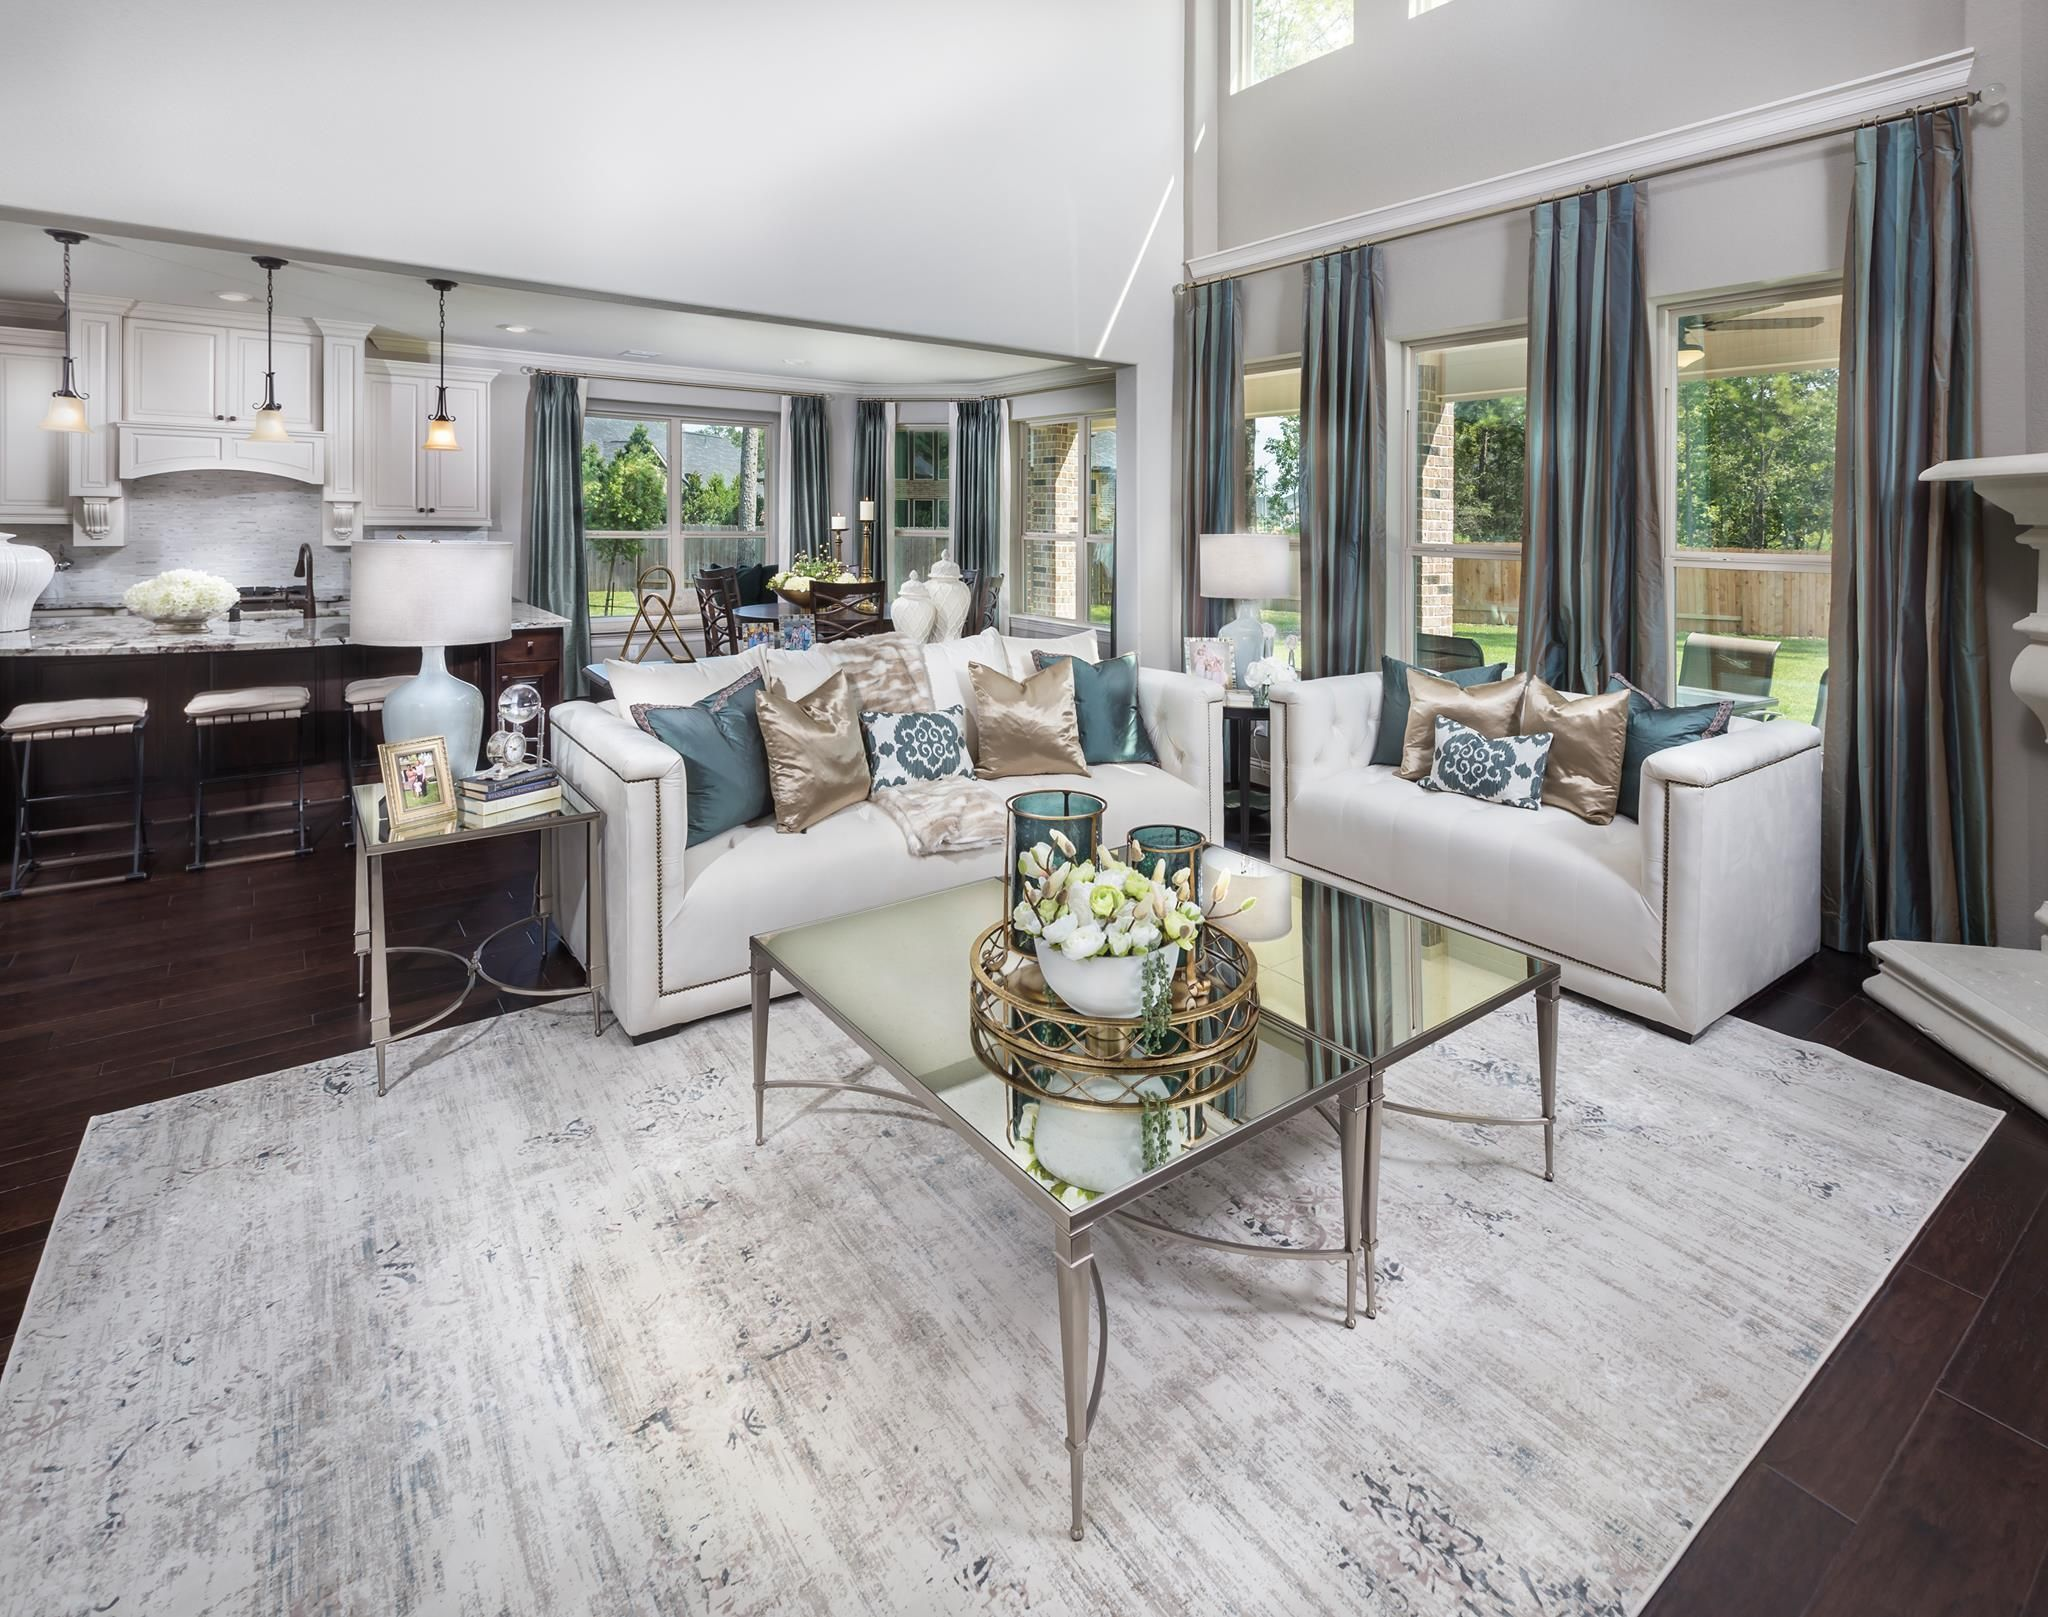 How Would You Rate The Decor In This Family Room On A Scale From 1